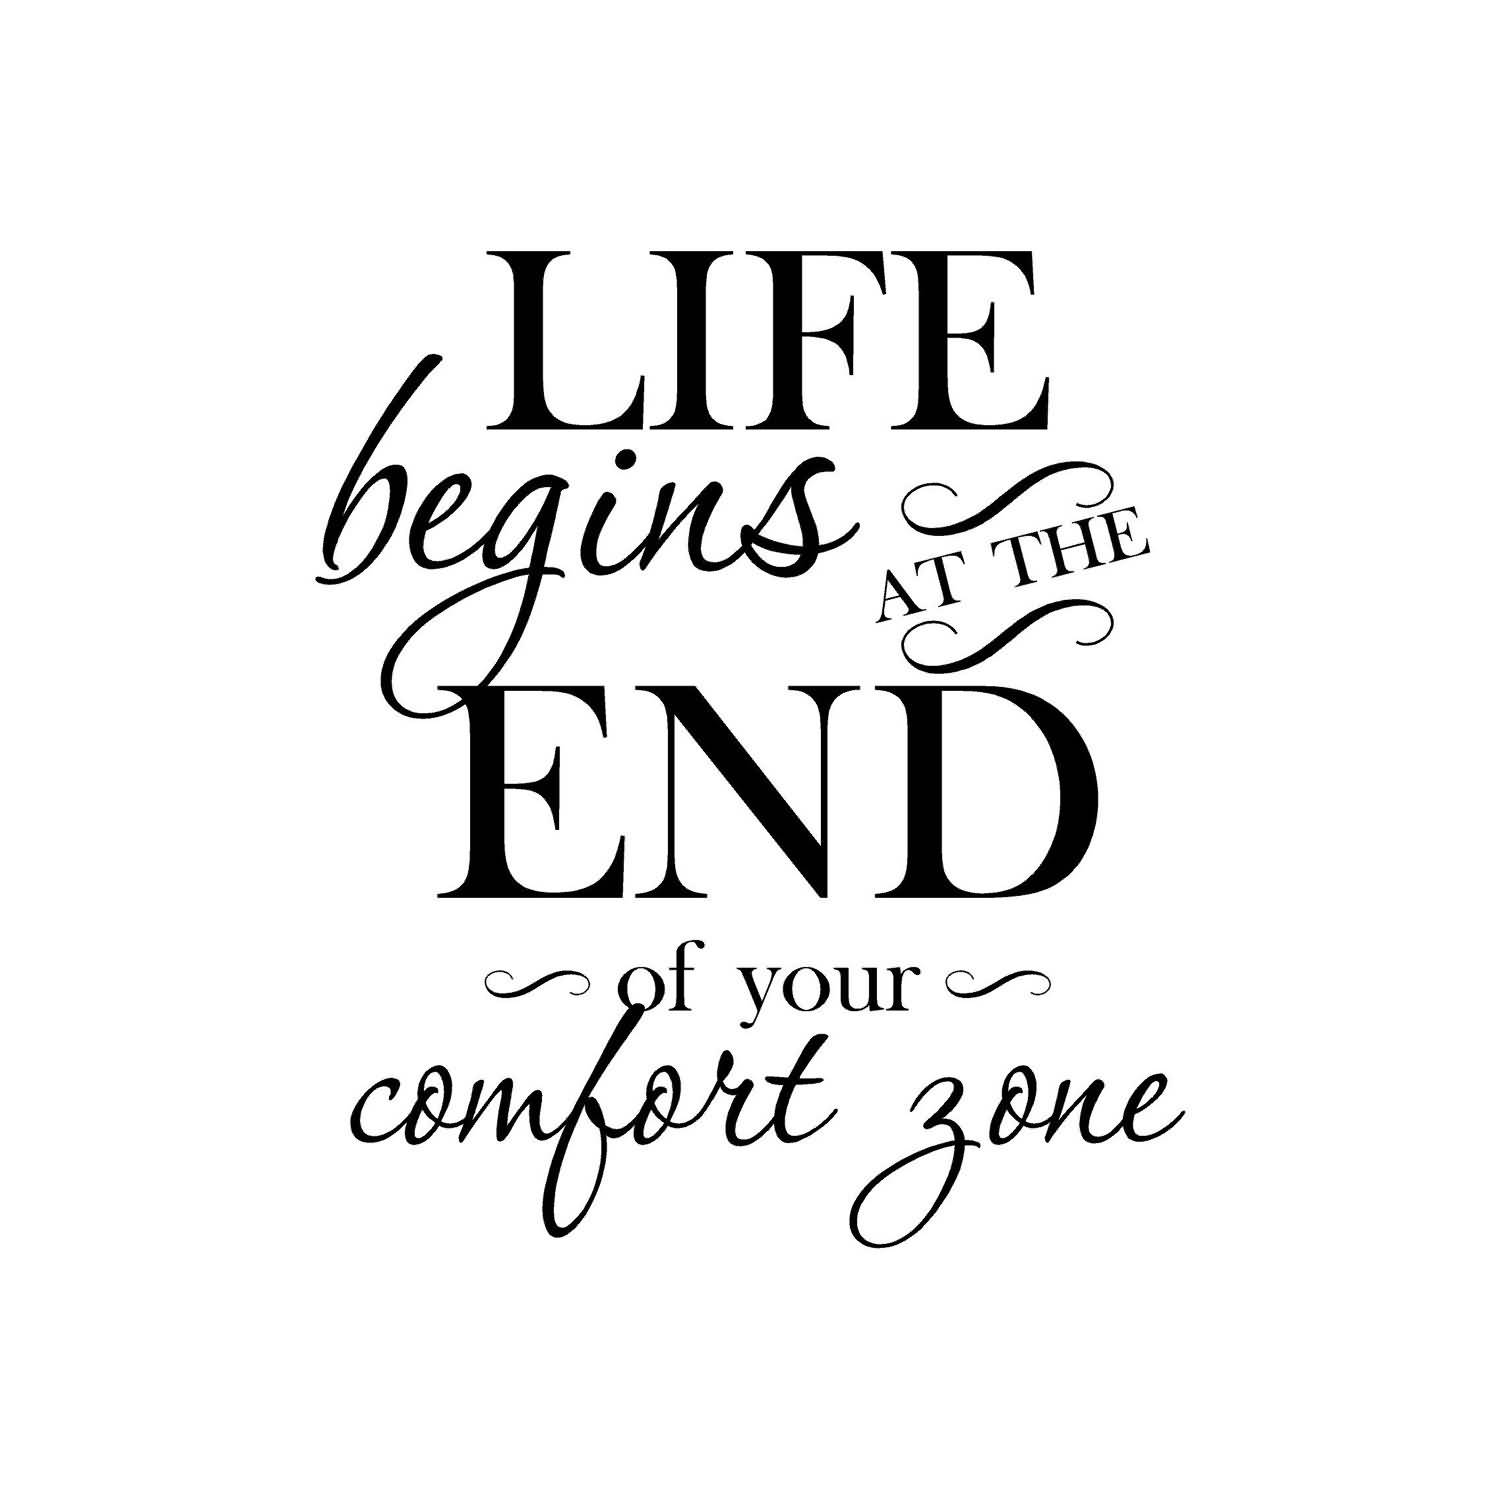 End Of Life Quotes Inspirational: 61 Top Job Quotes And Sayings